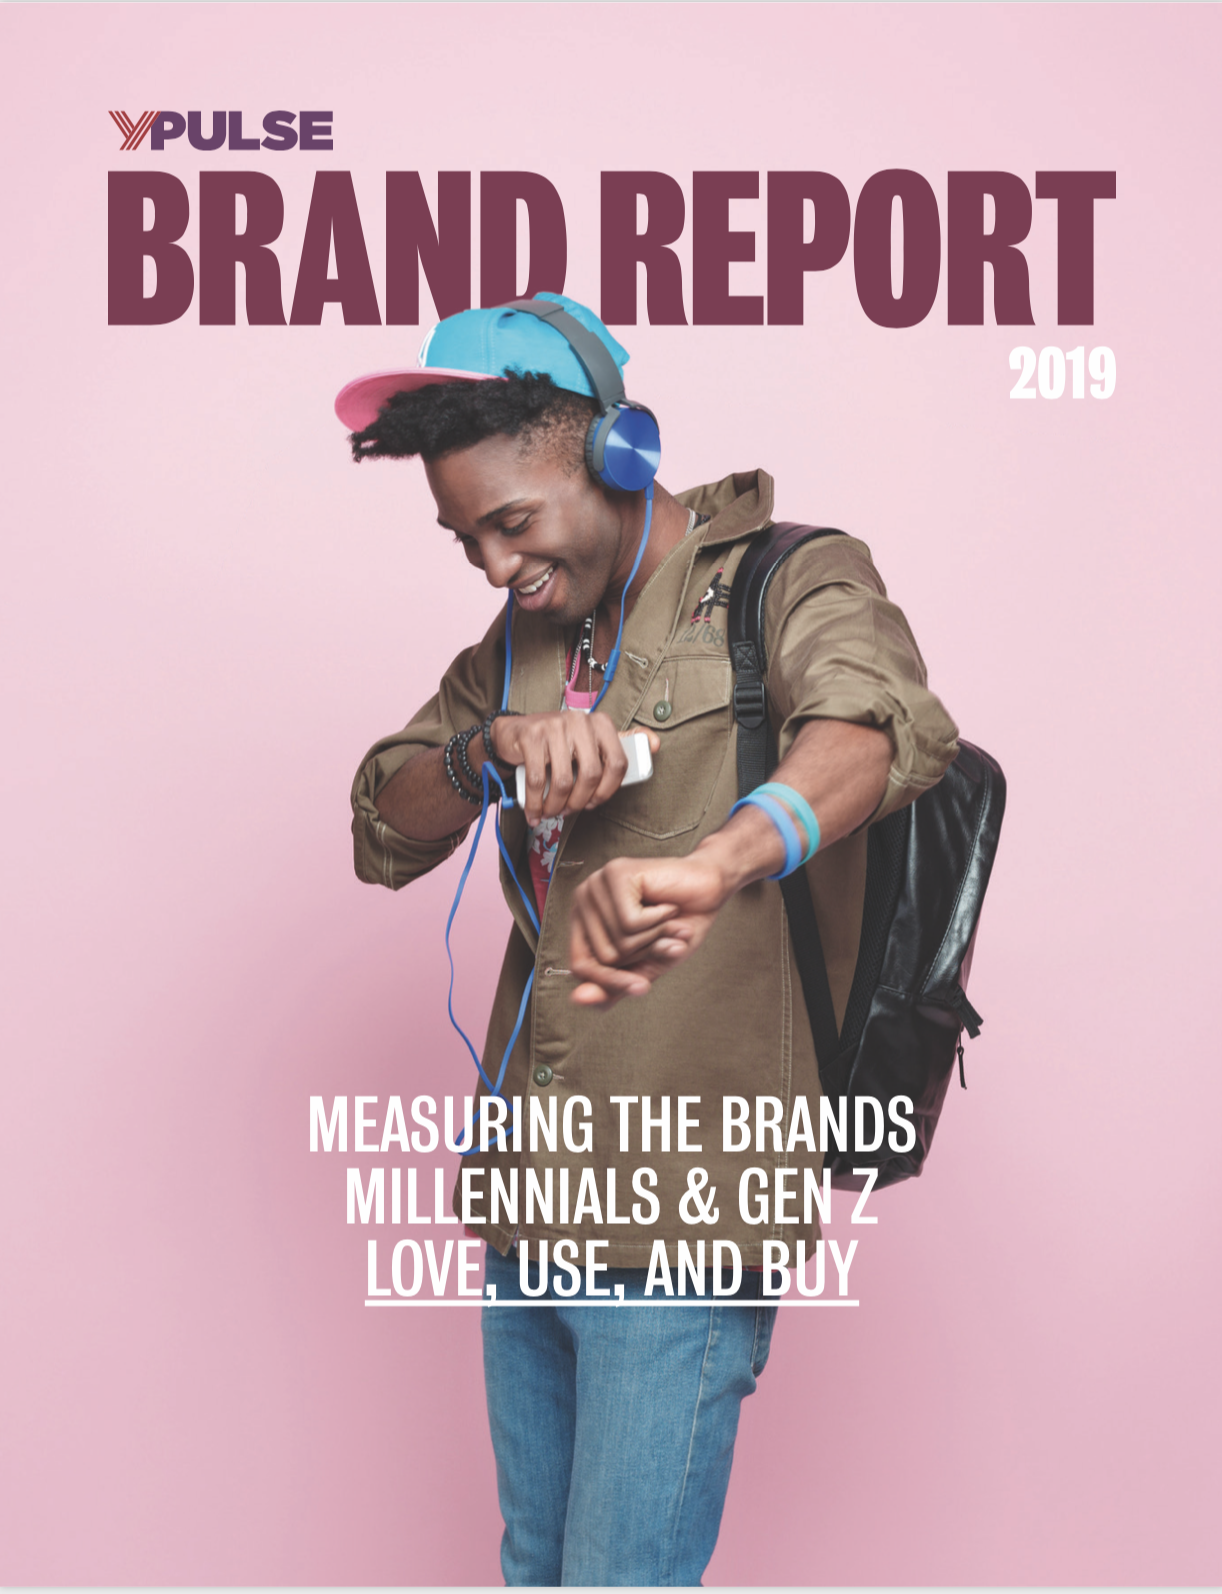 YPulse Brand Report 2019